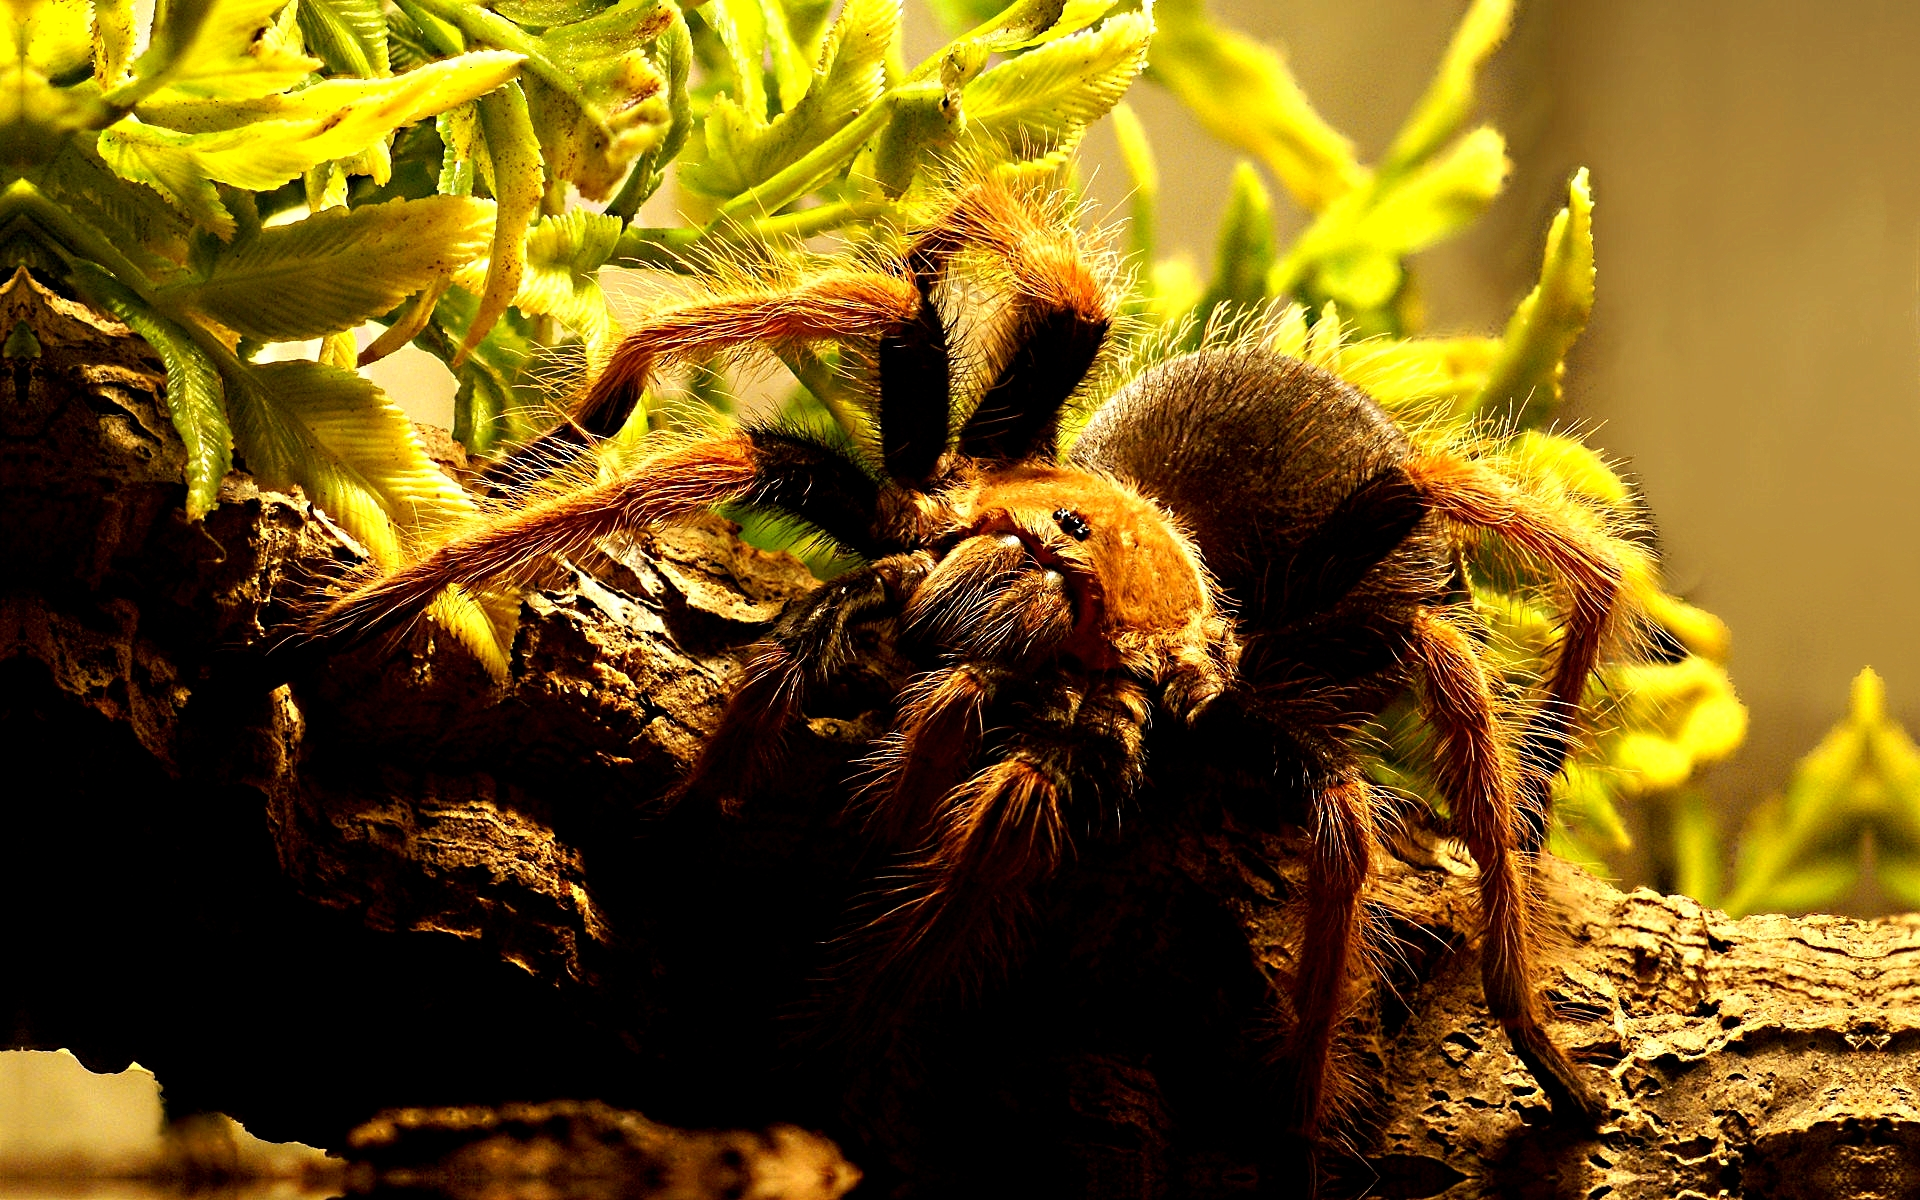 Tarantula full hd wallpaper and background image - Spider hd images download ...